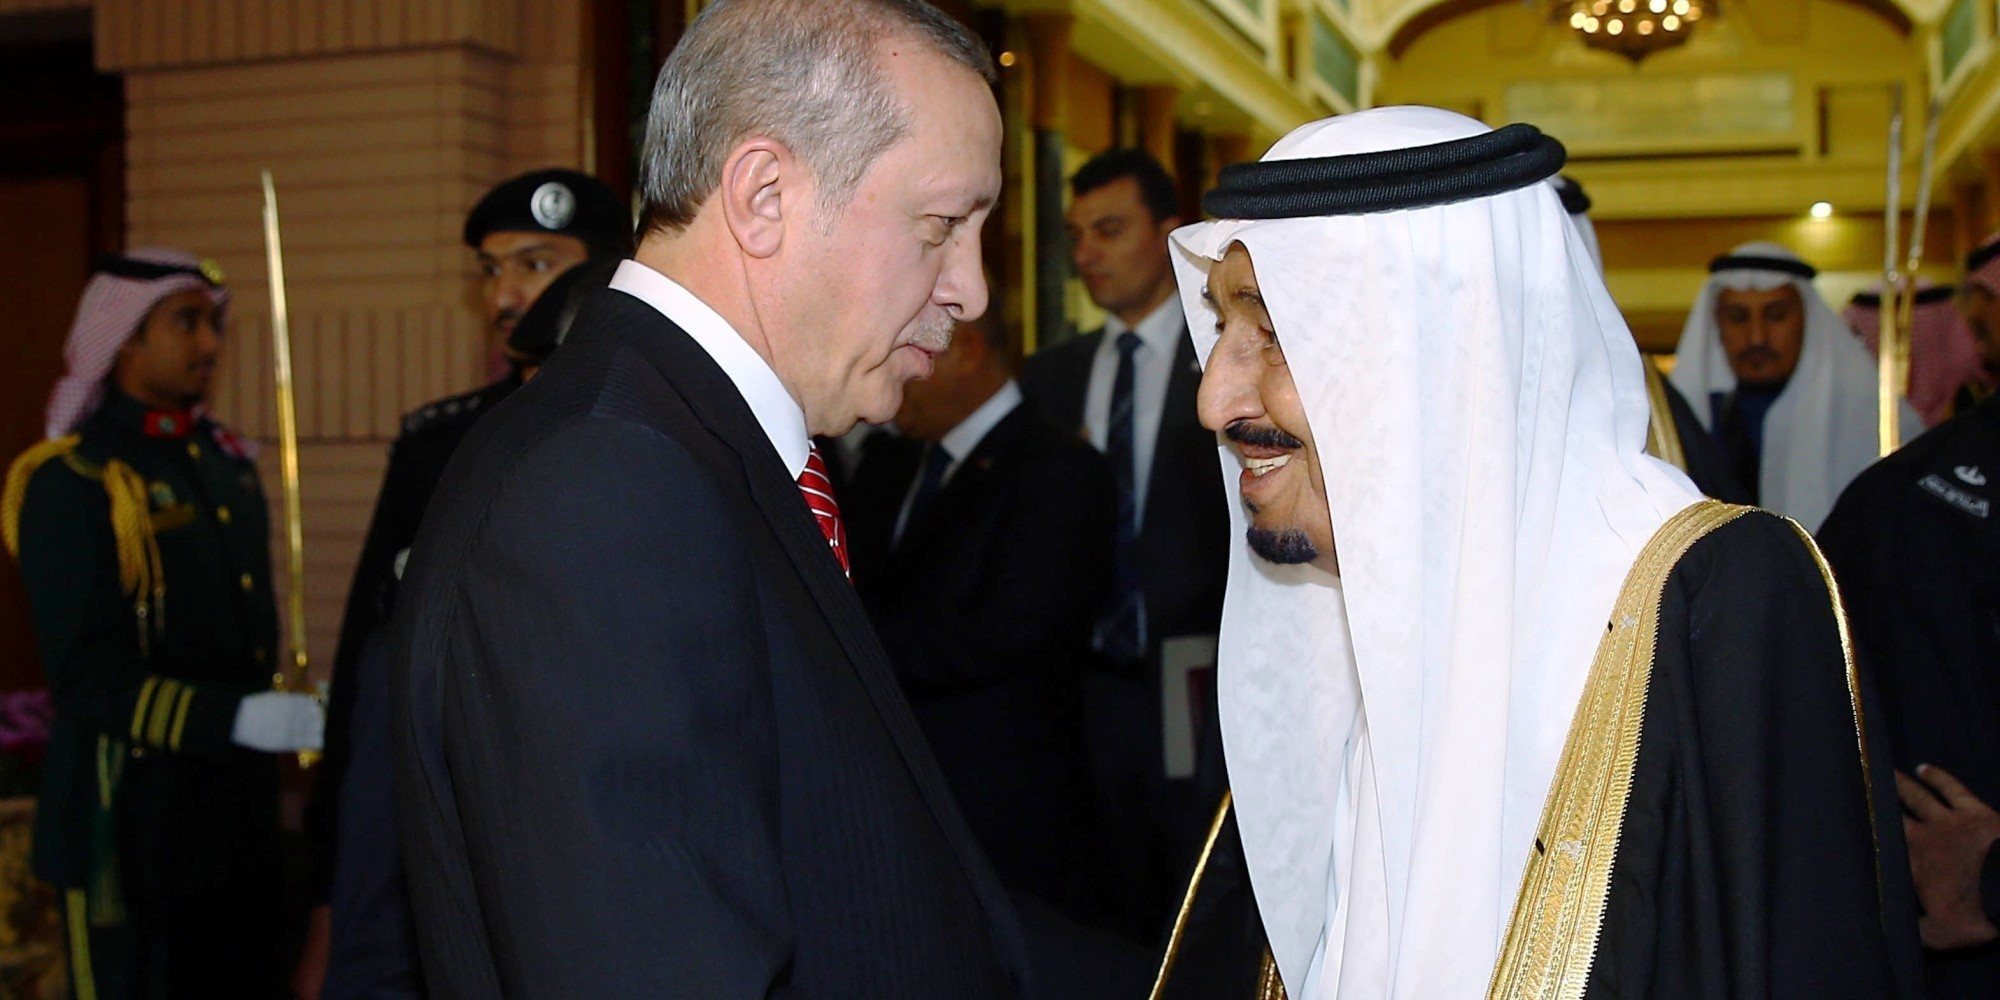 RIYADH, SAUDI ARABIA - MARCH 02: Turkish President Recep Tayyip Erdogan (L) is bid farewell by King of Saudi Arabia, Salman bin Abdulaziz Al Saud (R) after their meeting at Riyadh's Erga Palace in Saudi Arabia on March 02, 2015. (Photo by Kayhan Özer/Anadolu Agency/Getty Images)